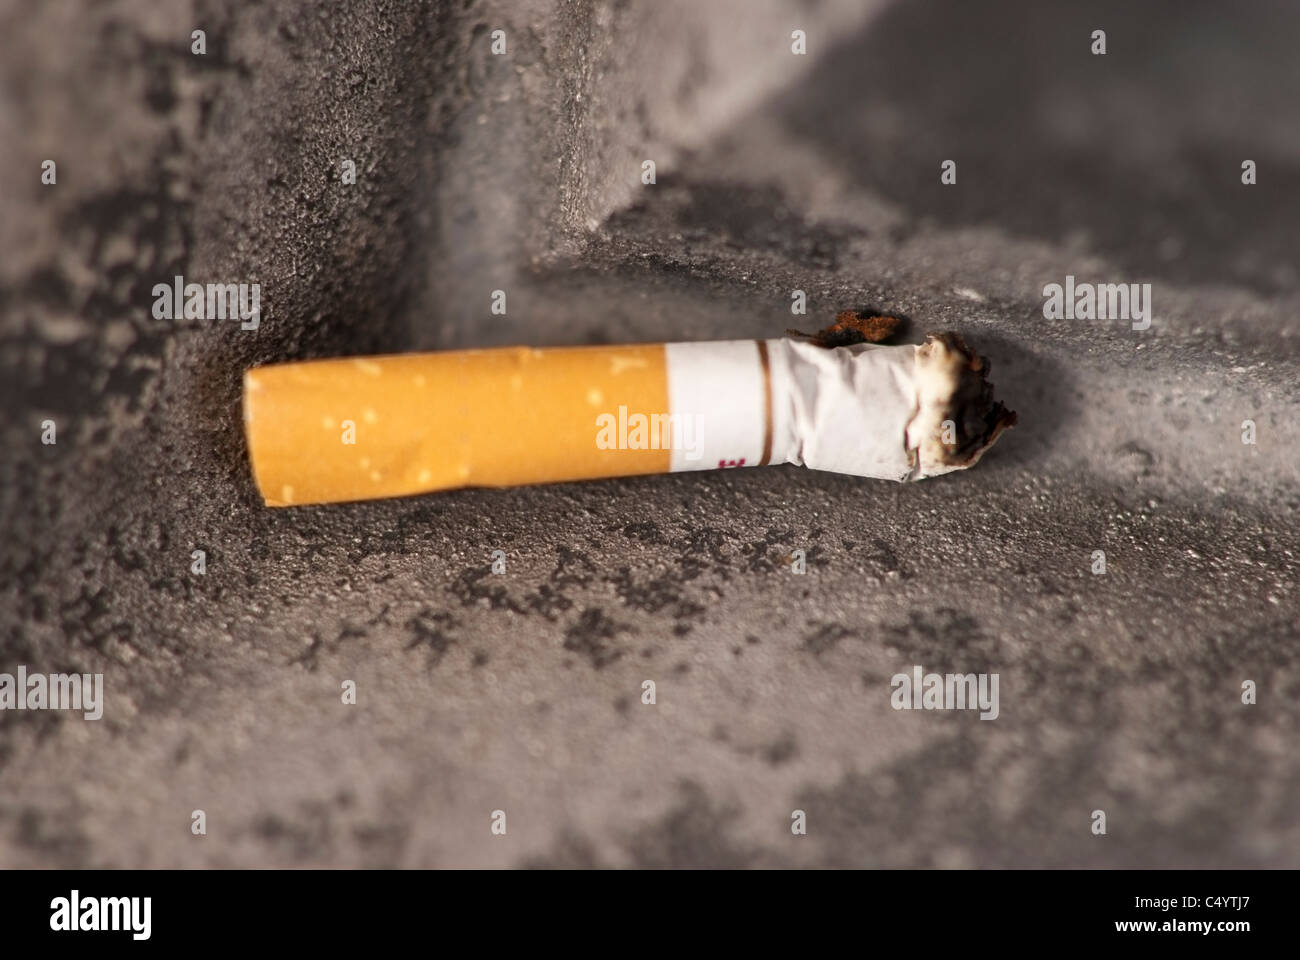 A smoked cigarette. - Stock Image